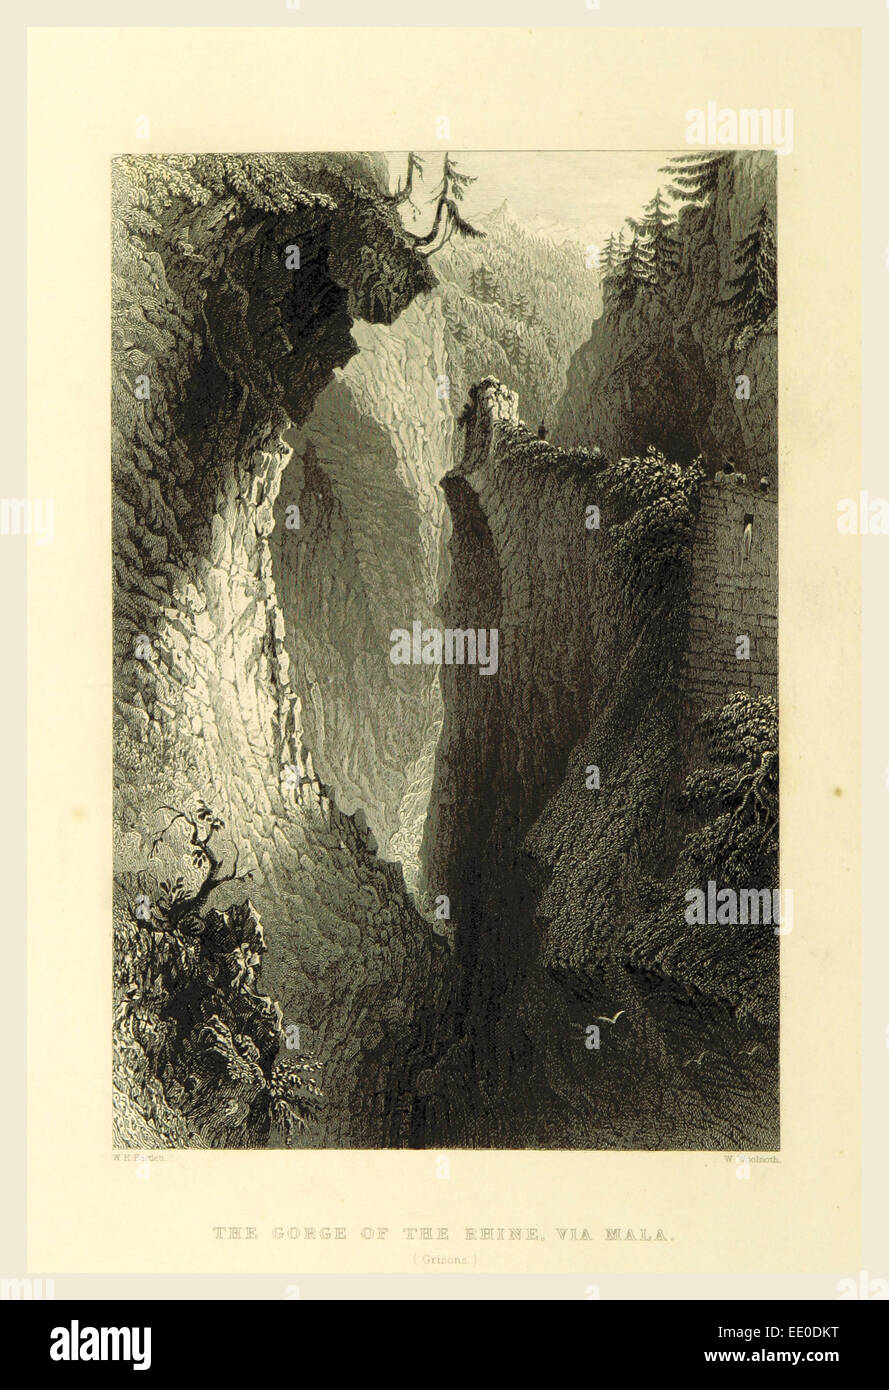 Gorge of the Rhine, Via Mala, Switzerland. Illustrated by W. H. Bartlett, 19th century engraving - Stock Image